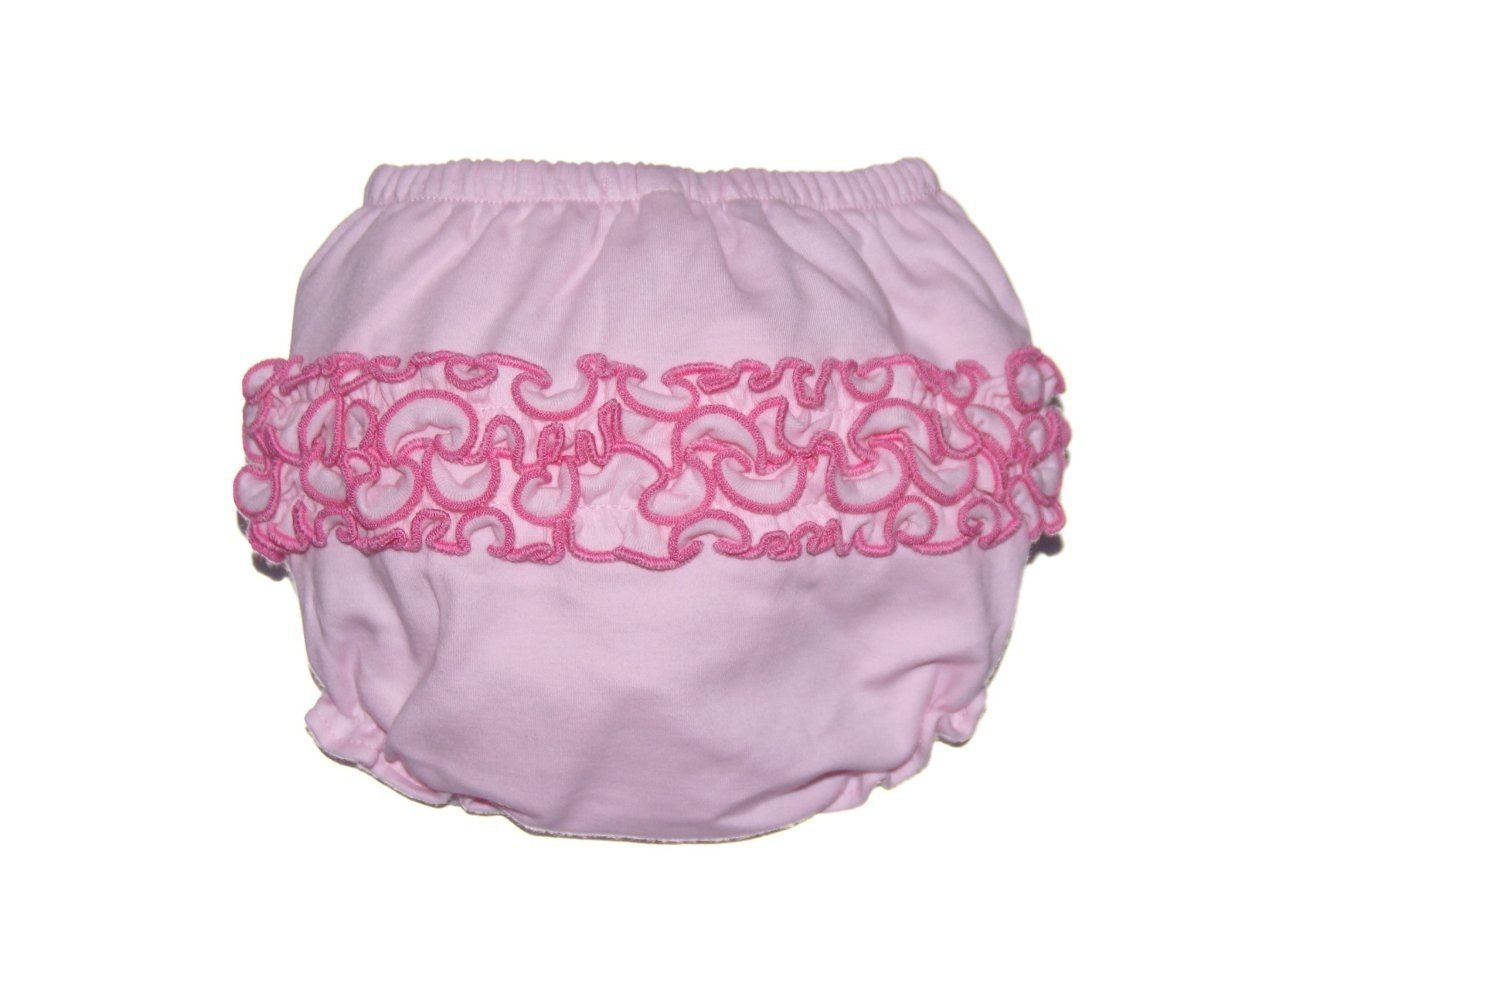 12-18M Pink Ruffle Bloomers with Hot Pink Stitching By Cute As Buttons